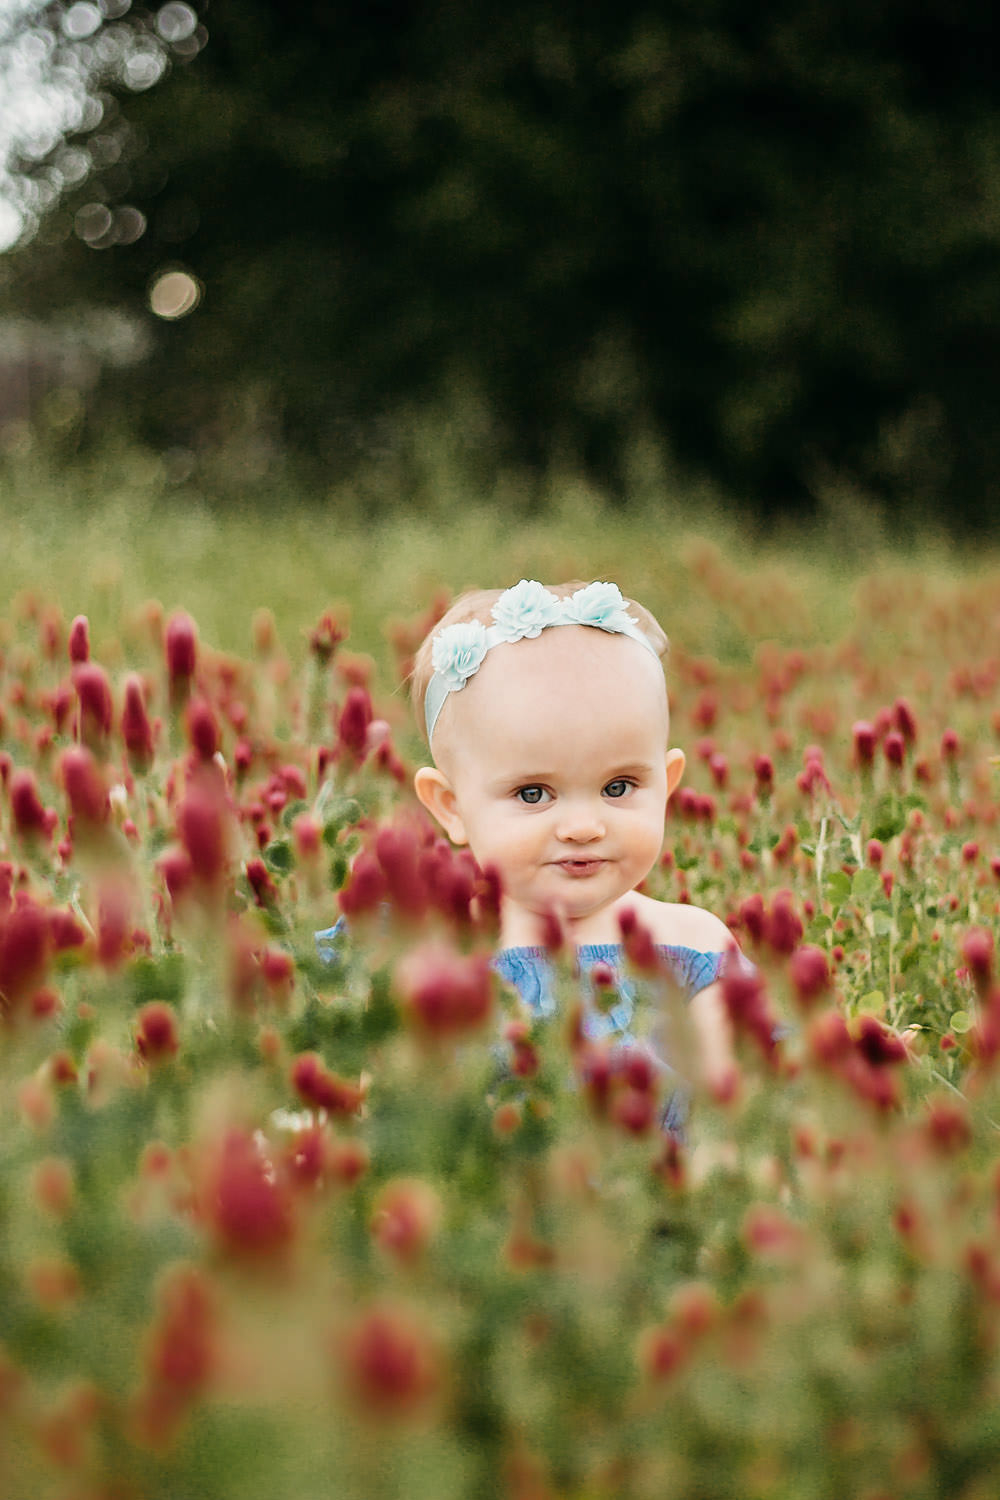 Mother and Daughter in a field of red flowers - Redding CA family photos